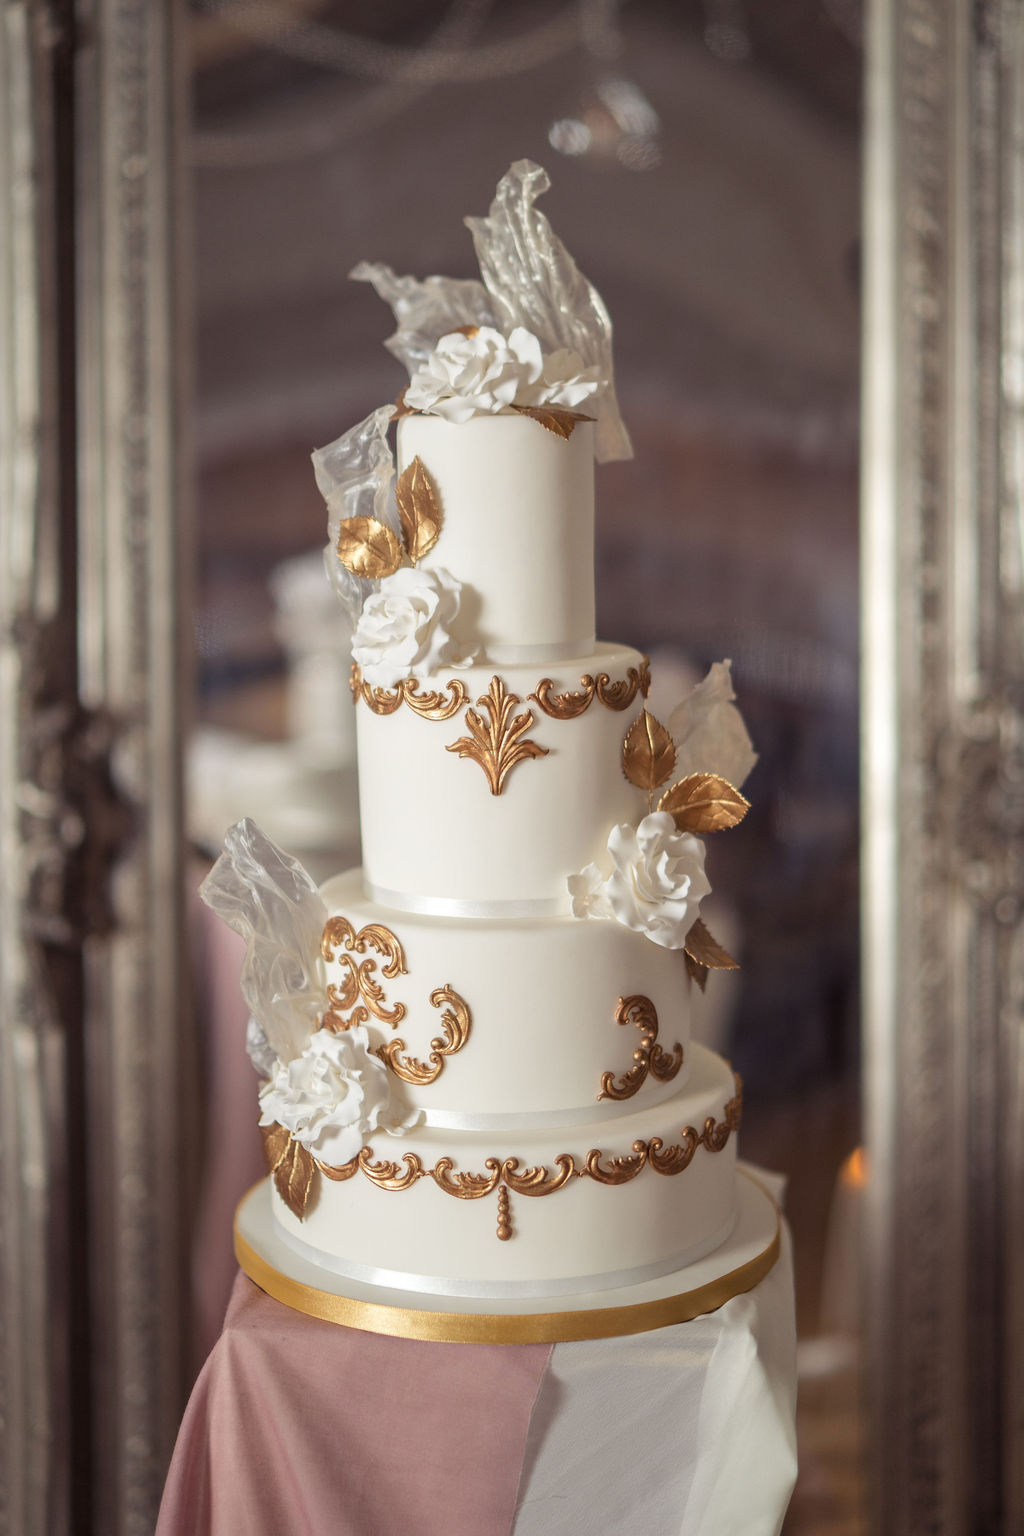 Ornate 3 tier gold and white wedding cake with white sugar flowers for movie themed wedding day on dusky pink pedestal